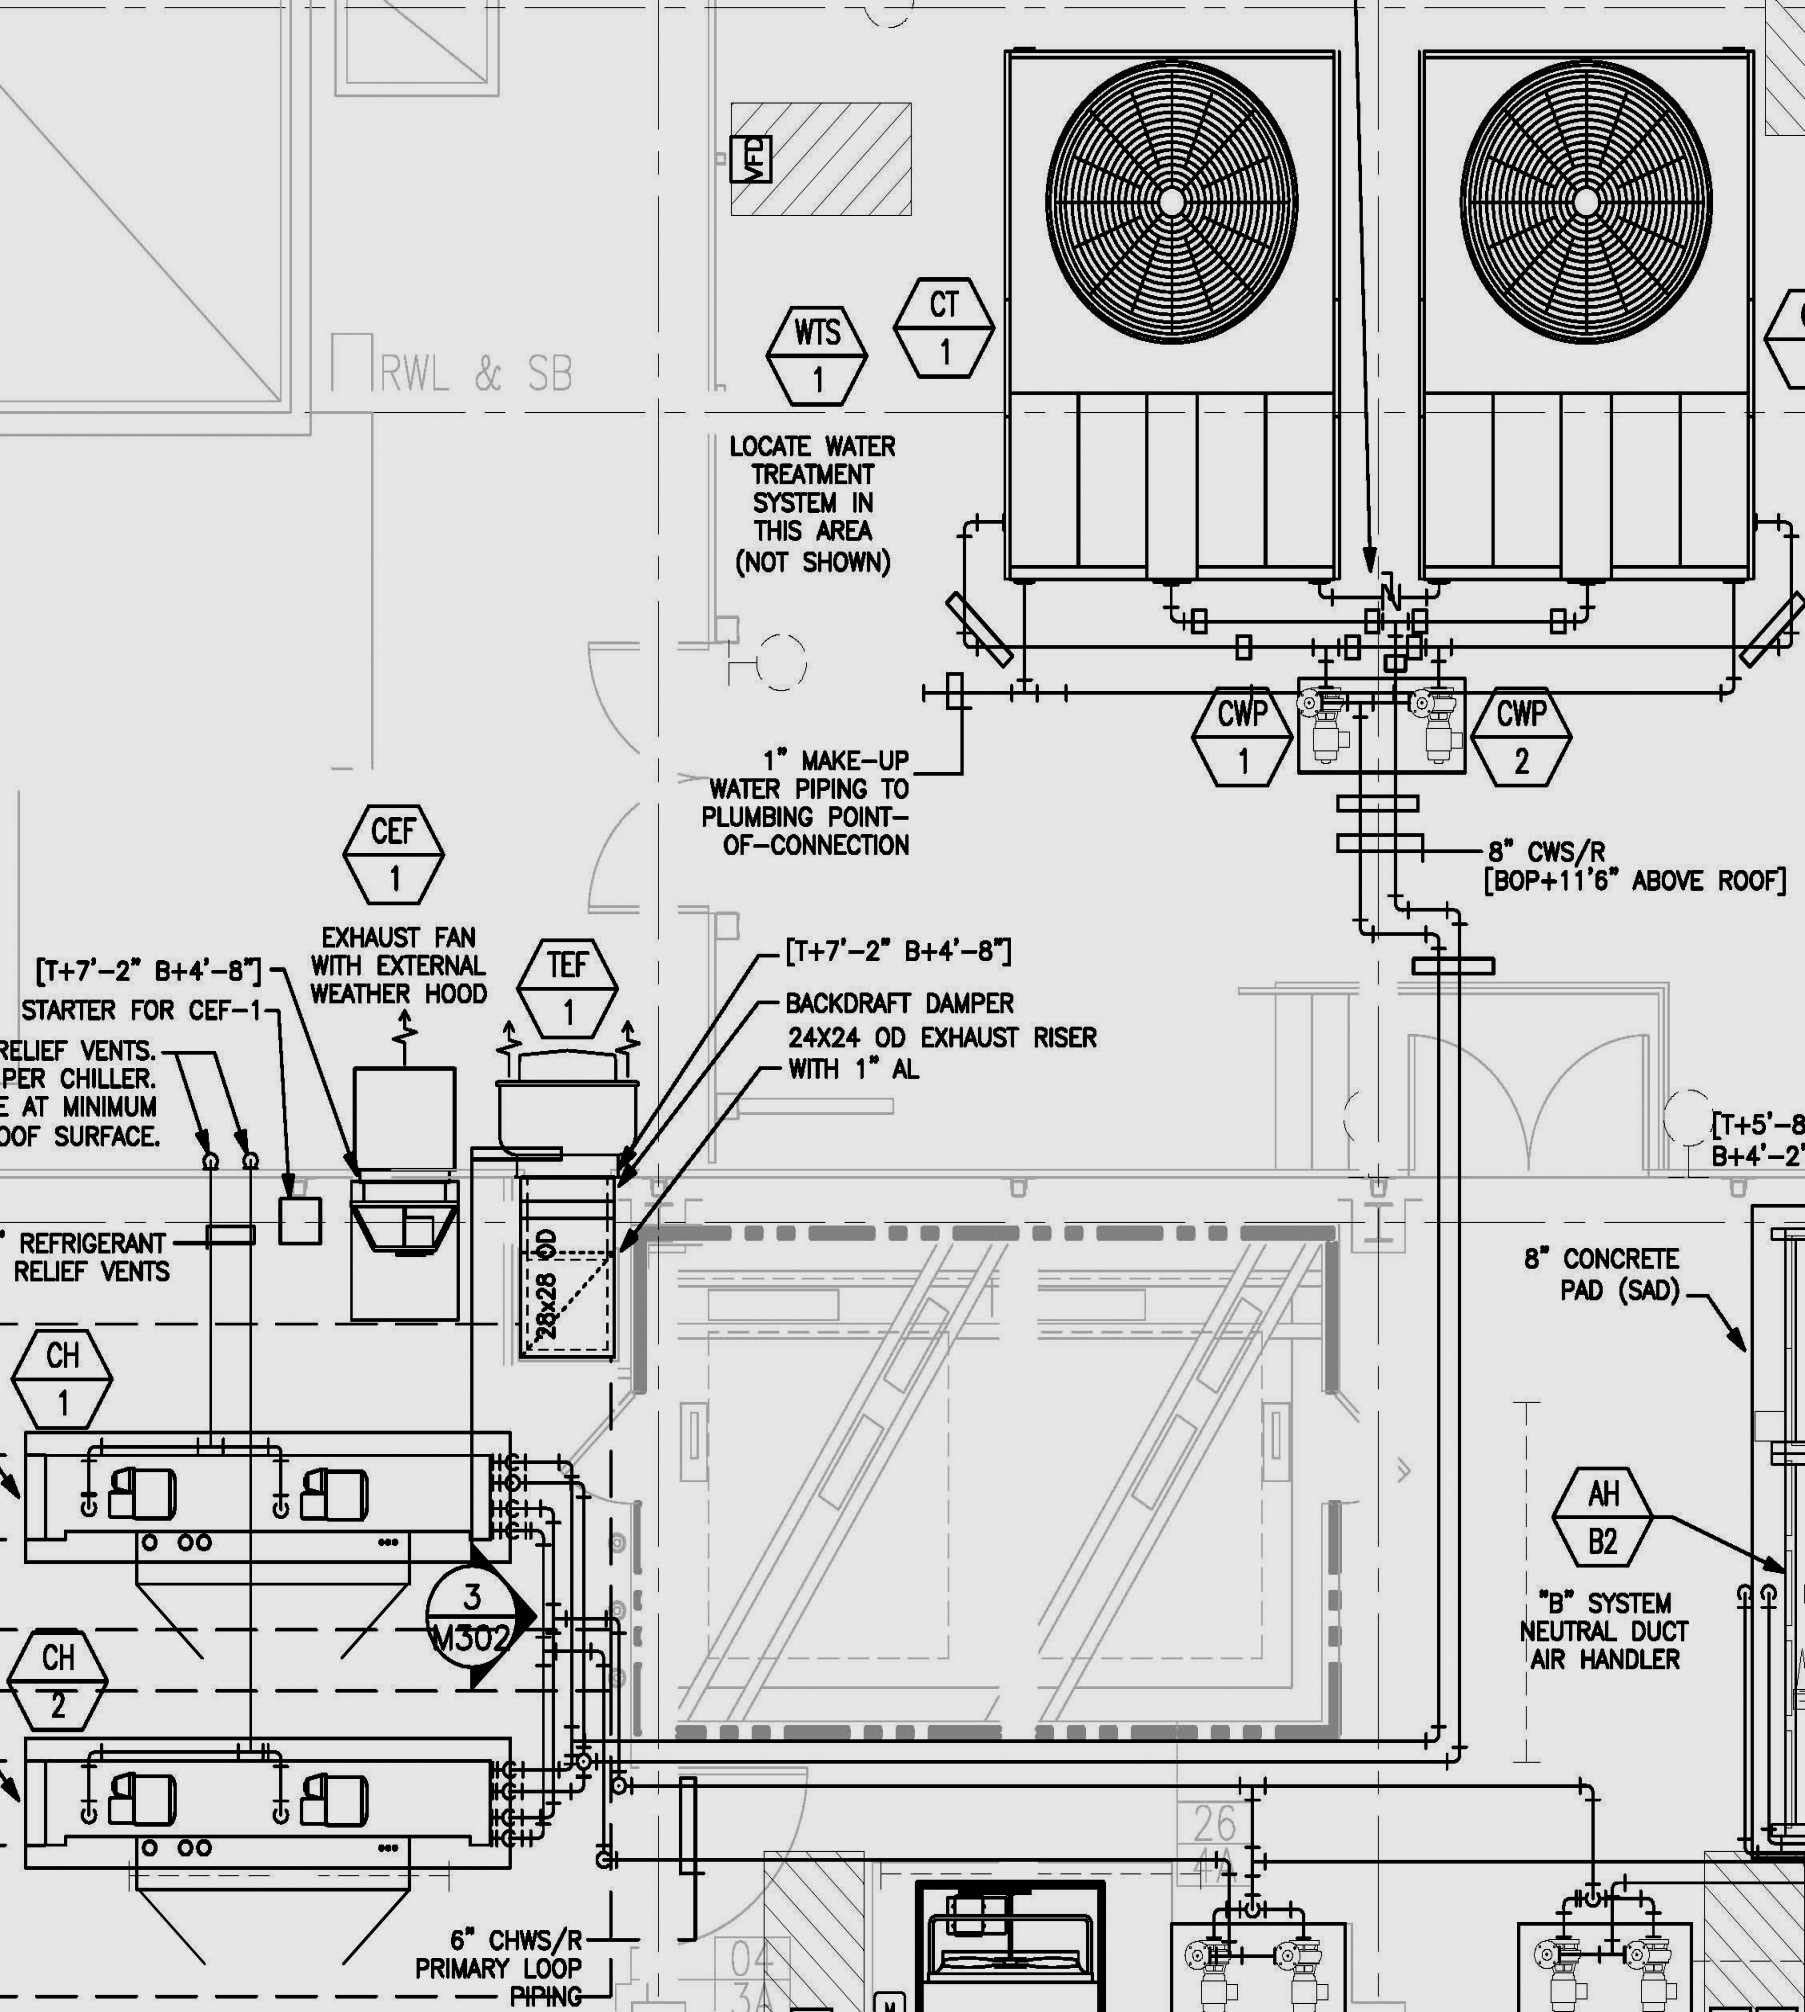 residential electrical wiring diagram example zookastar rh zookastar DIY Electrical Wiring Residential Household Wiring Diagrams Simple